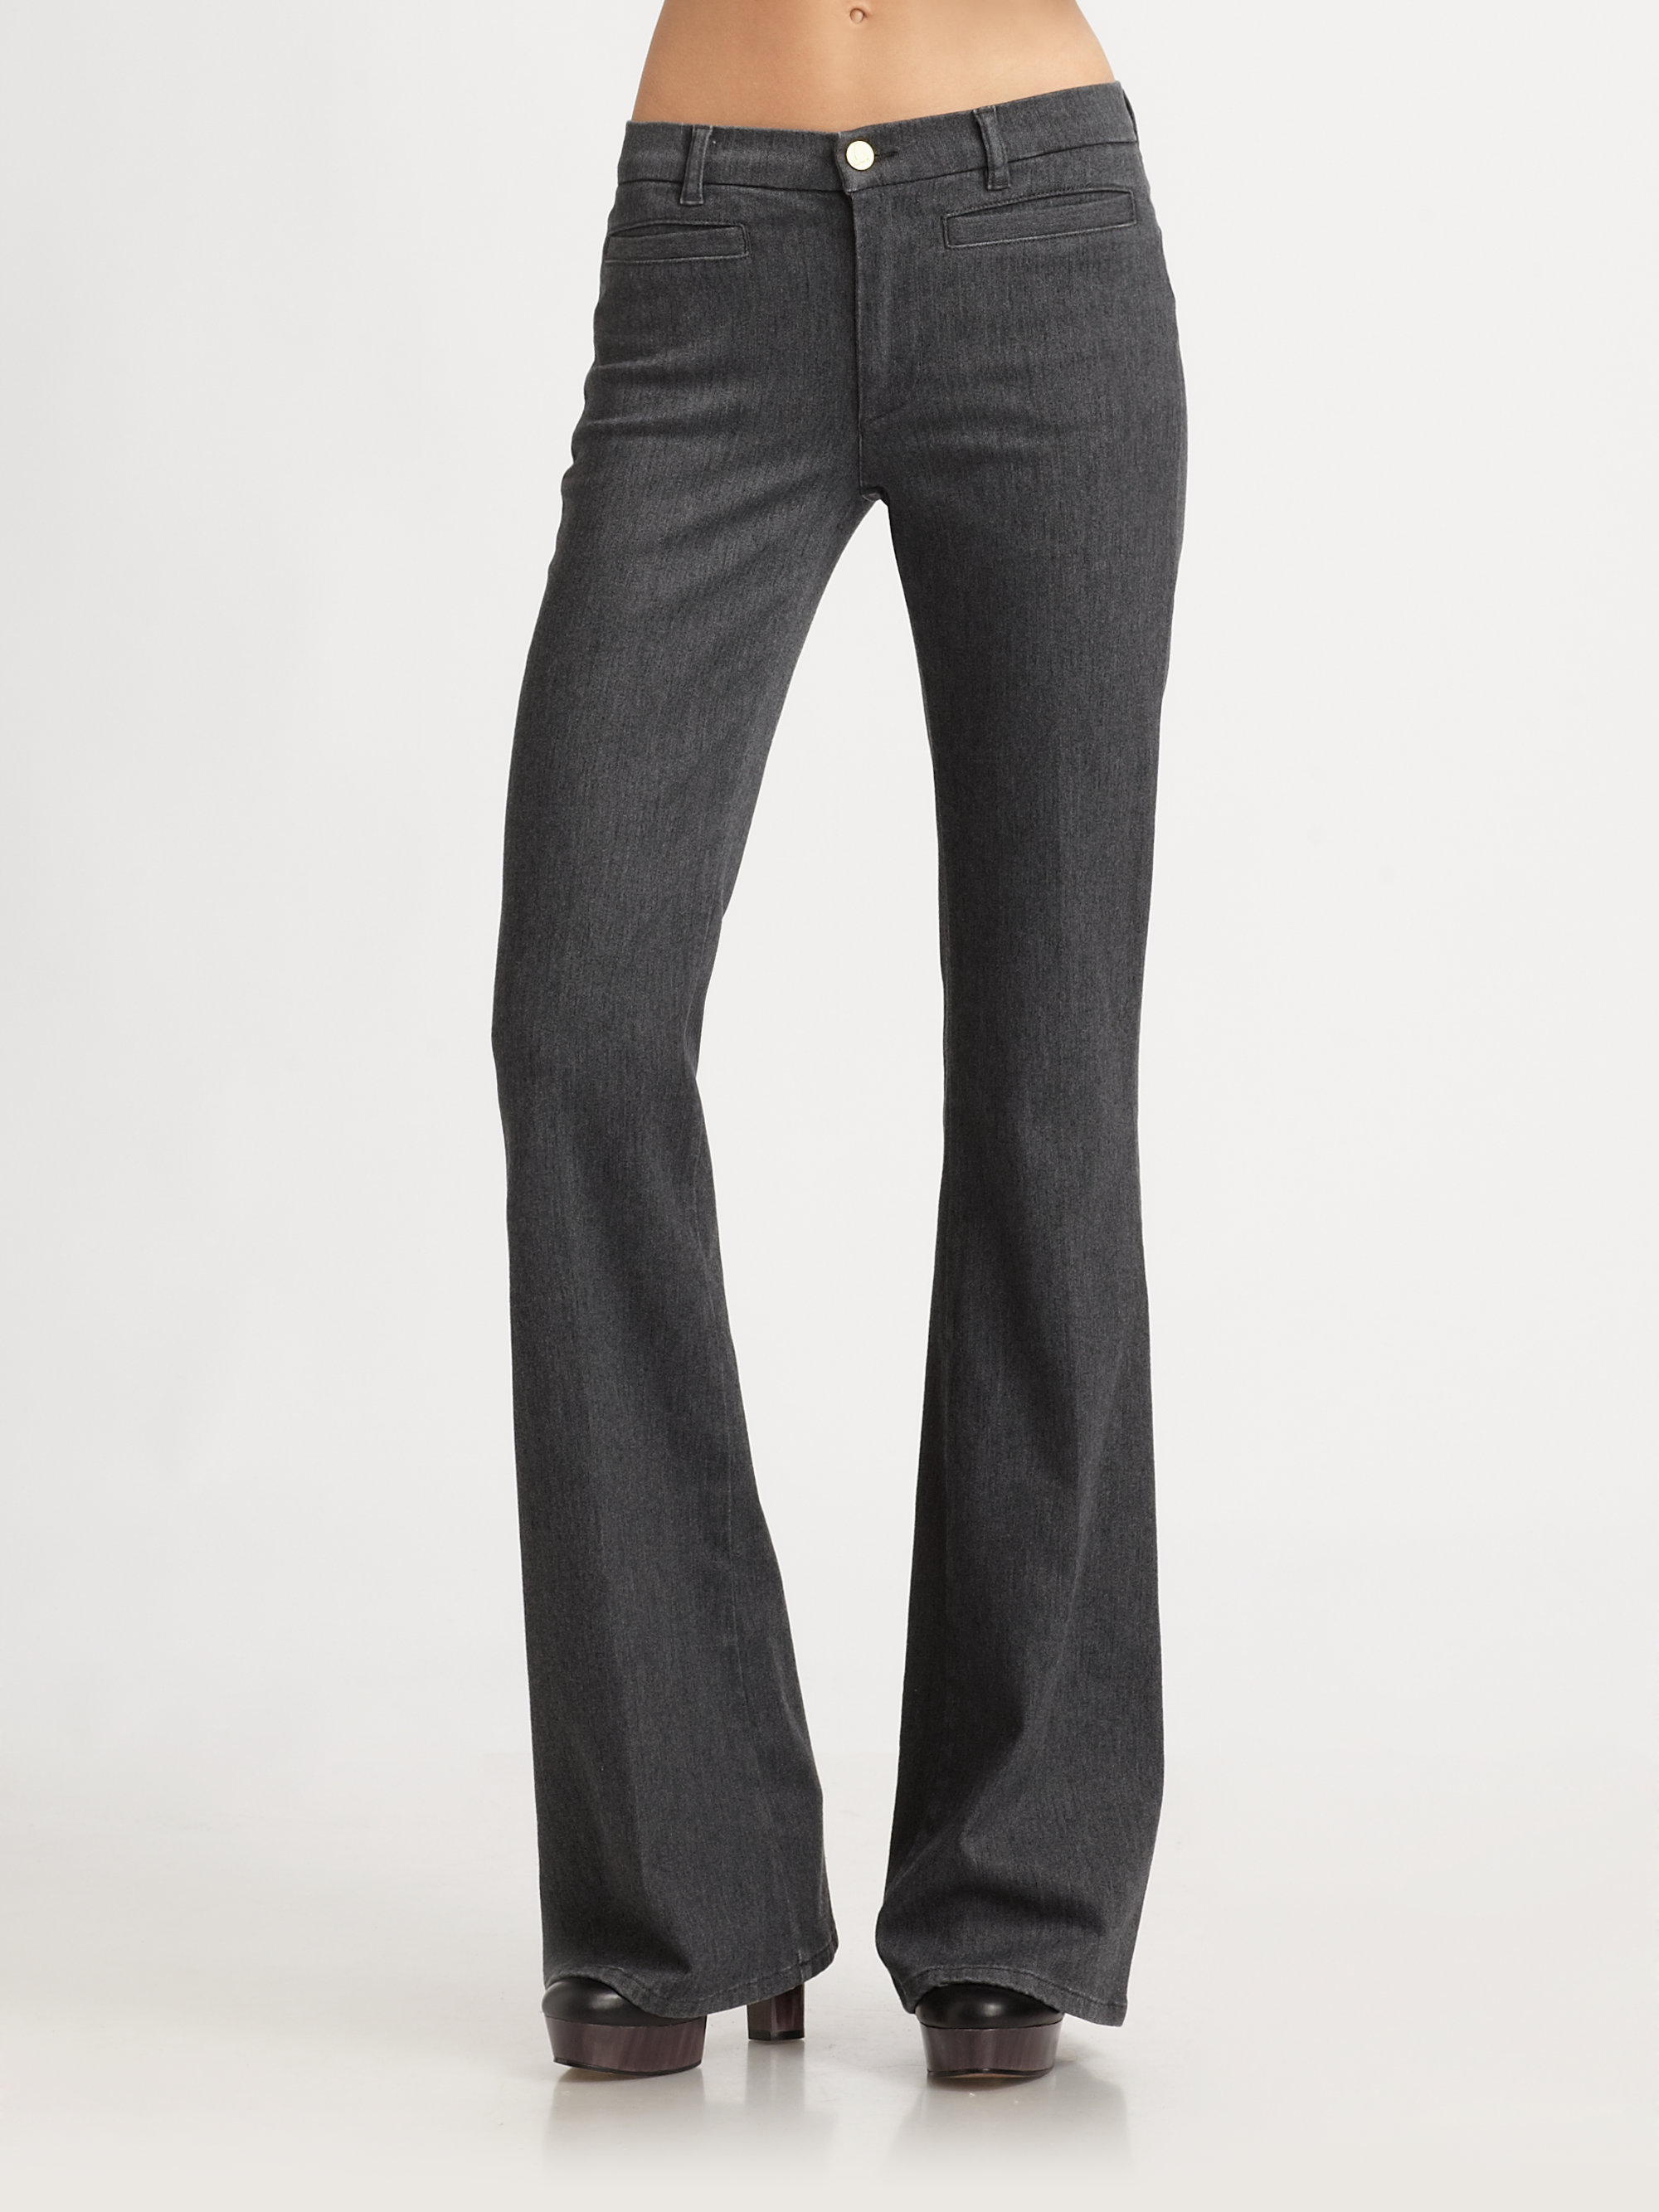 M.i.h jeans Flare Pants in Gray | Lyst